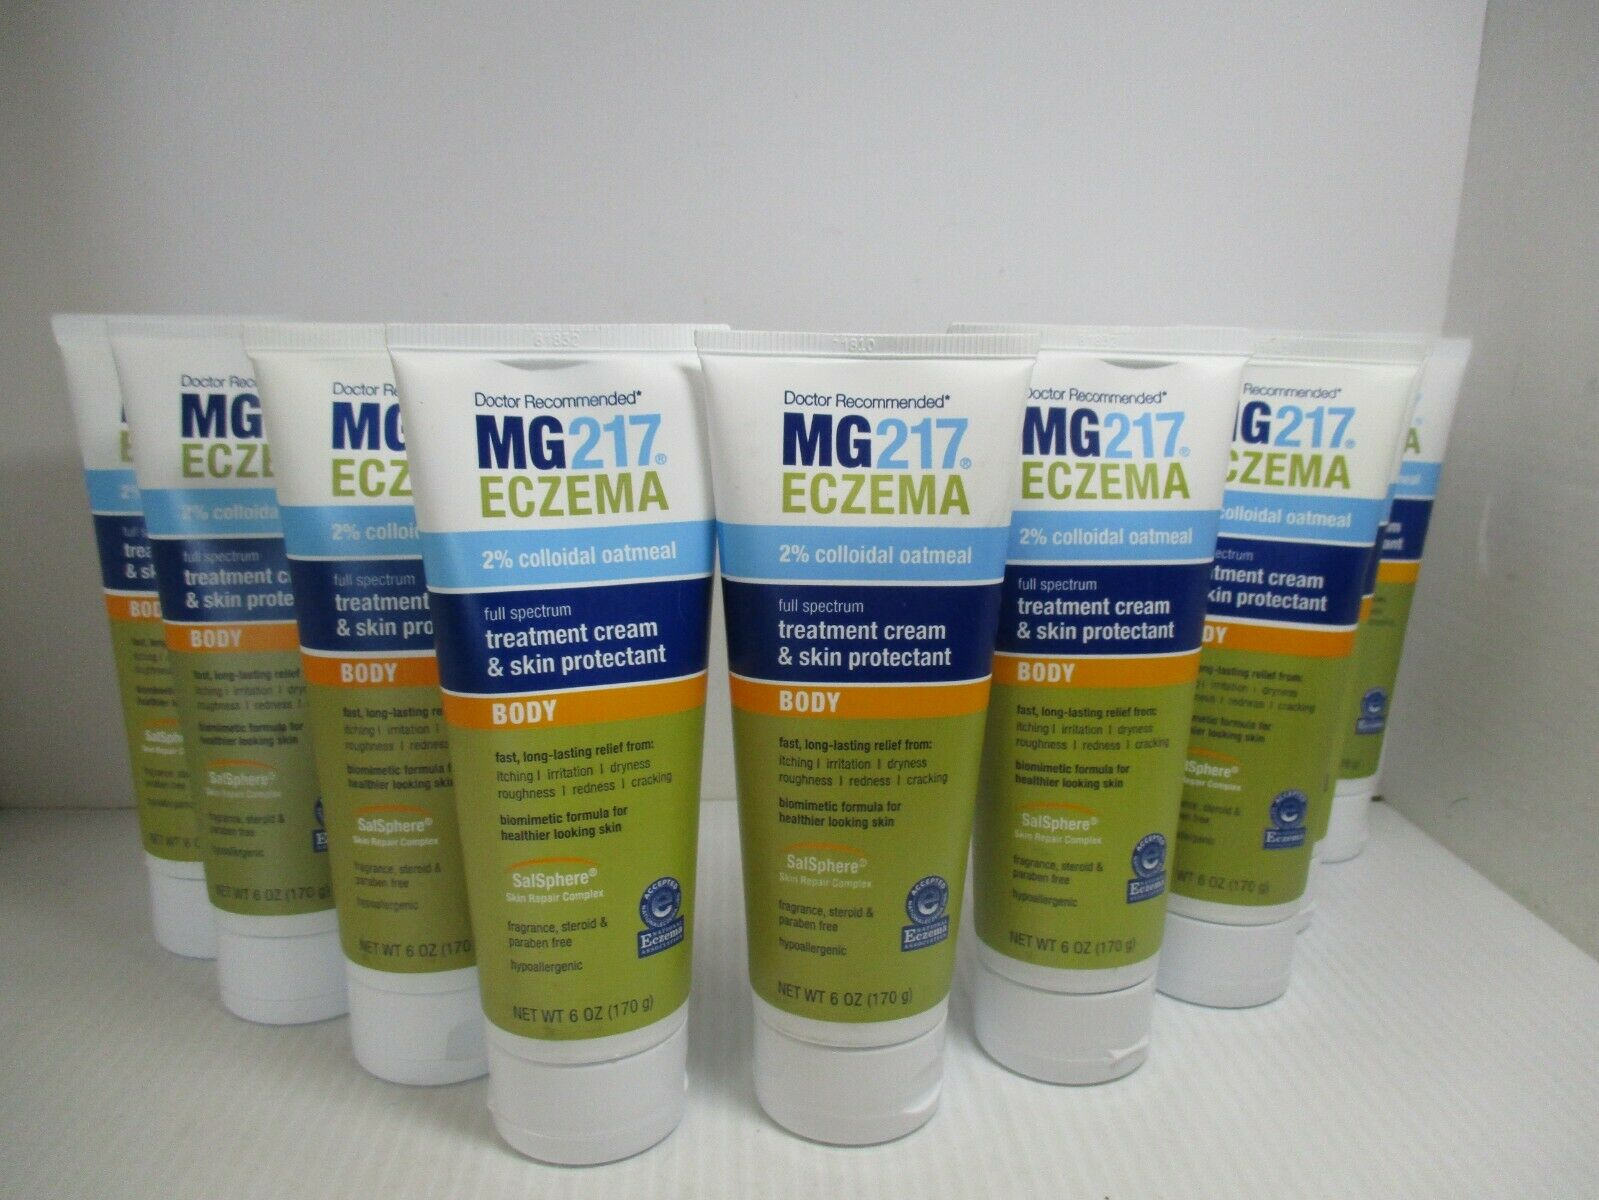 3 MG217  ECZEMA TREATMENT & SKIN PROTECTANT BODY CREAM 6 OZ